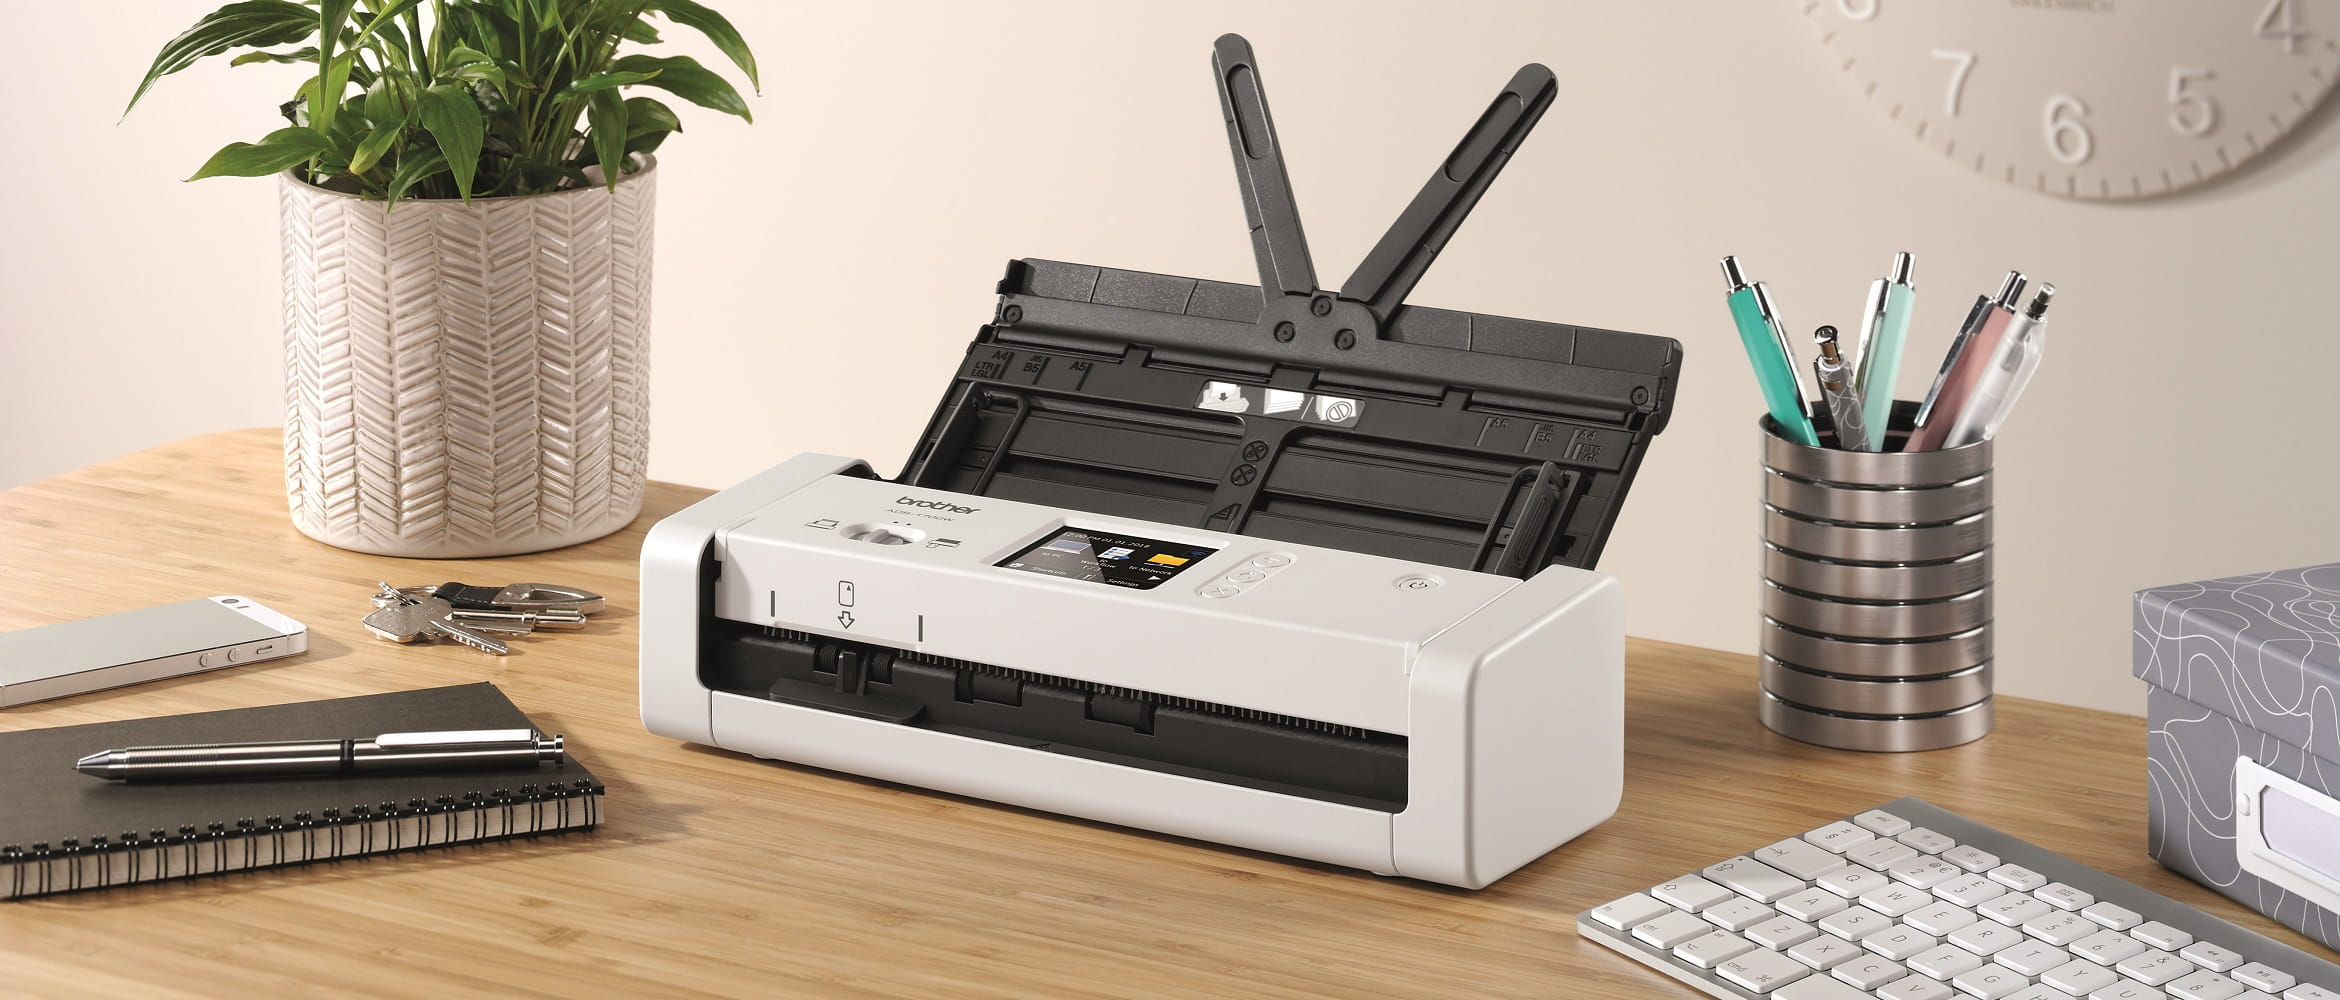 Scanner compatto Brother ADS1700w su una scrivania in ufficio